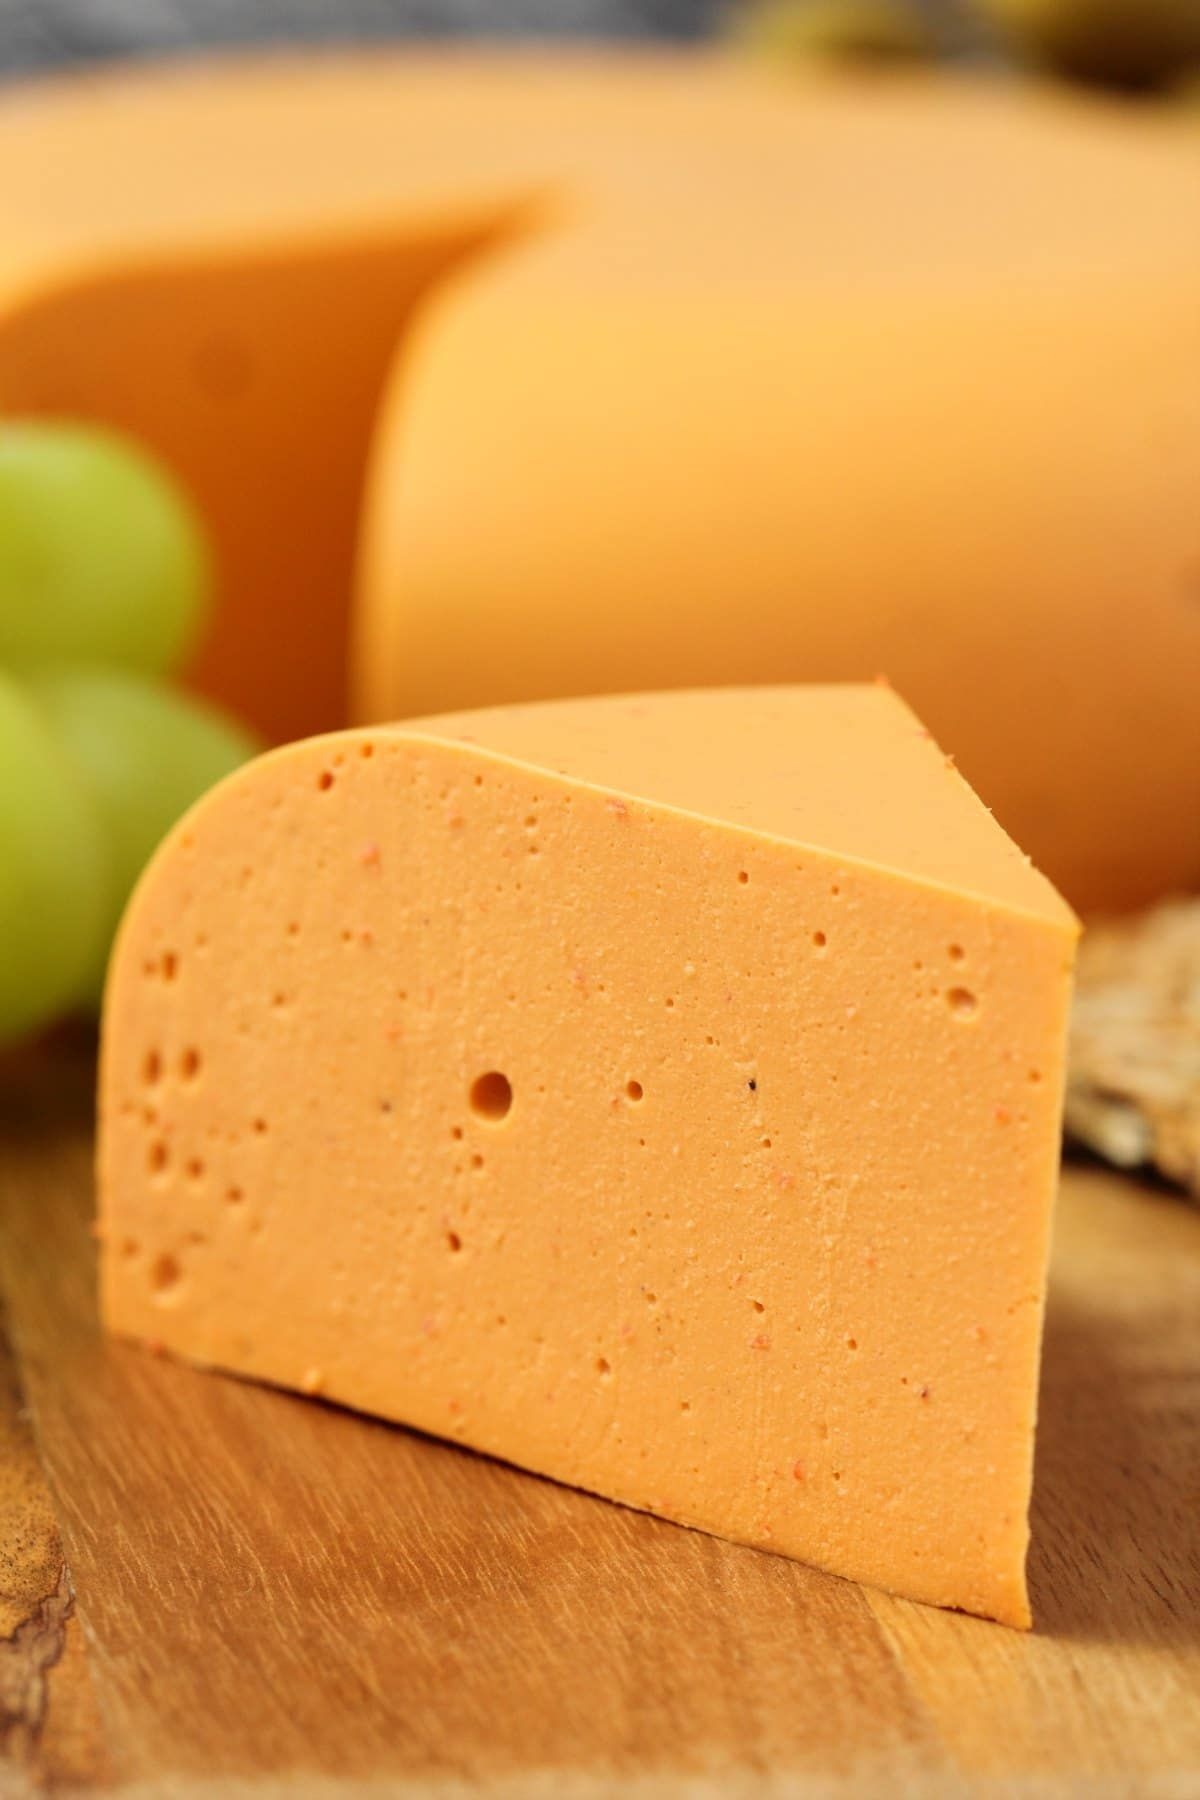 Smoky Red Pepper Vegan Cheddar Cheese Firm And Sliceable And Totally Delicious On Crackers Or Sandwich Vegan Cheddar Cheese Vegan Cheddar Vegan Cheese Recipes